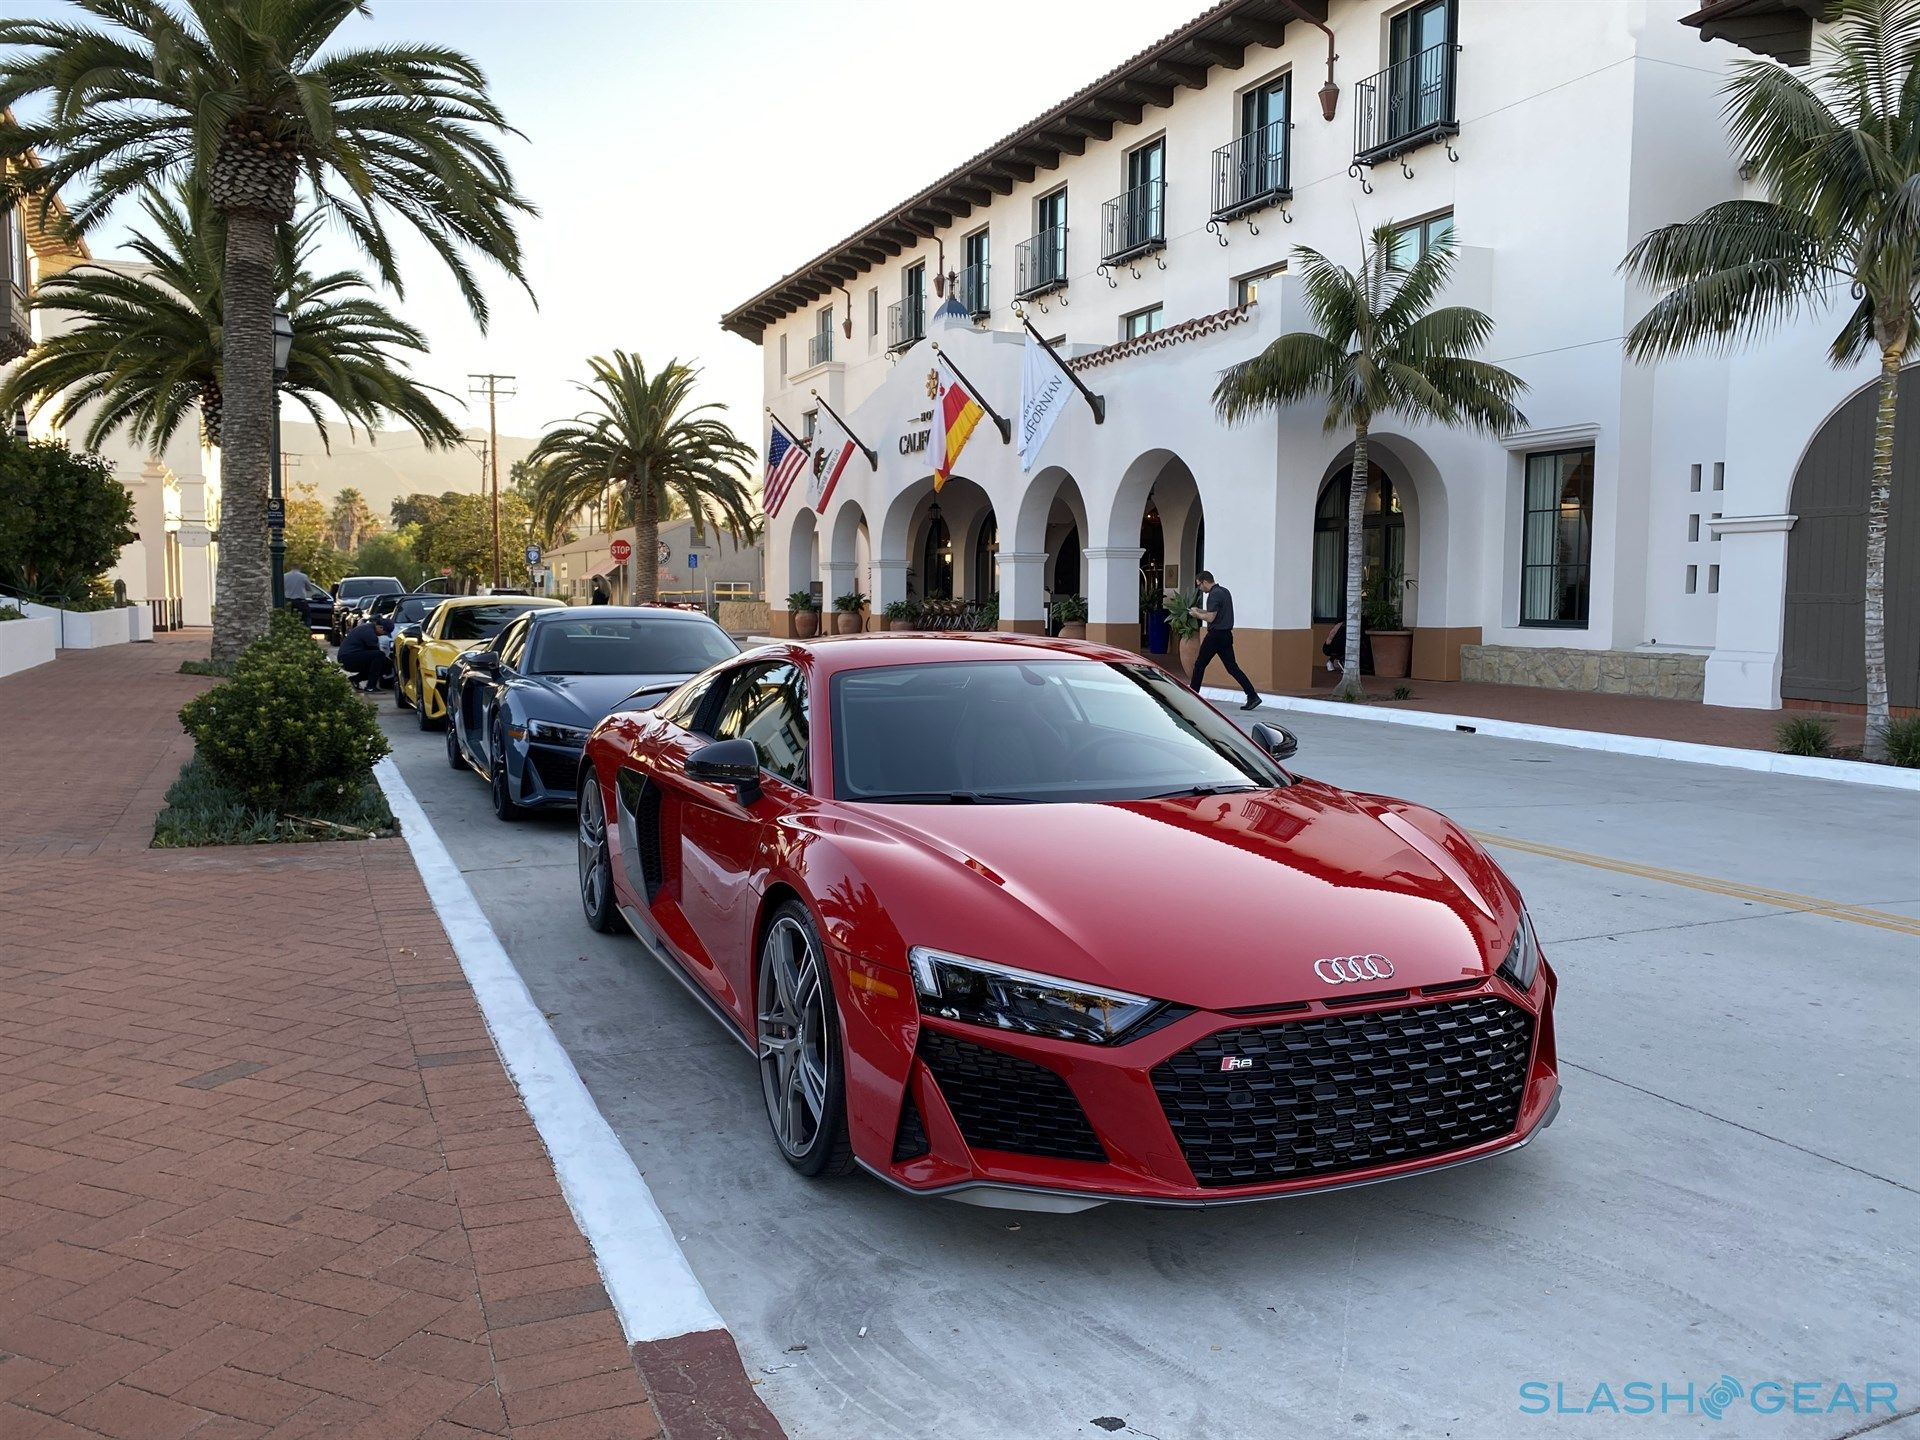 Perfect Review 2020 Audi R8 5 2 V10 Performance 0 60 And Images And Description